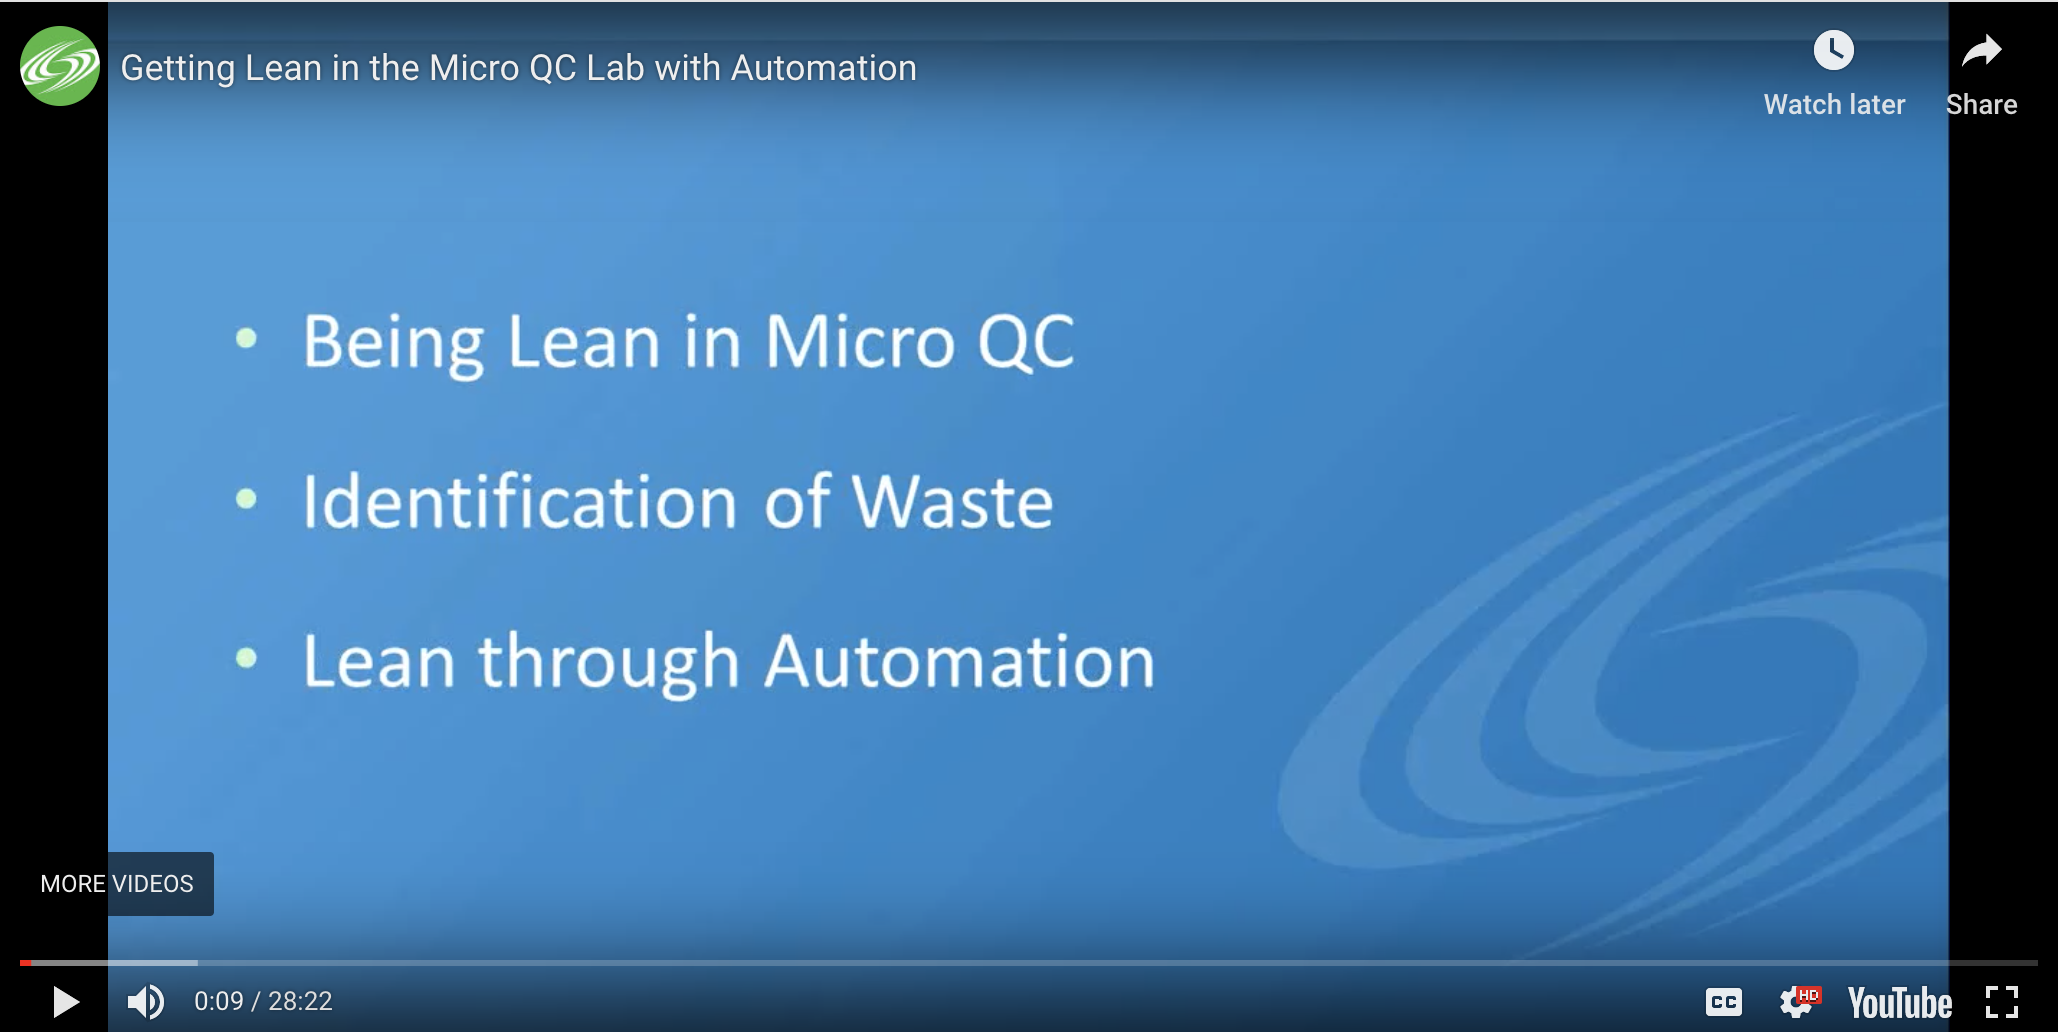 How to Get Lean in the Micro QC Lab with Automation Webinar